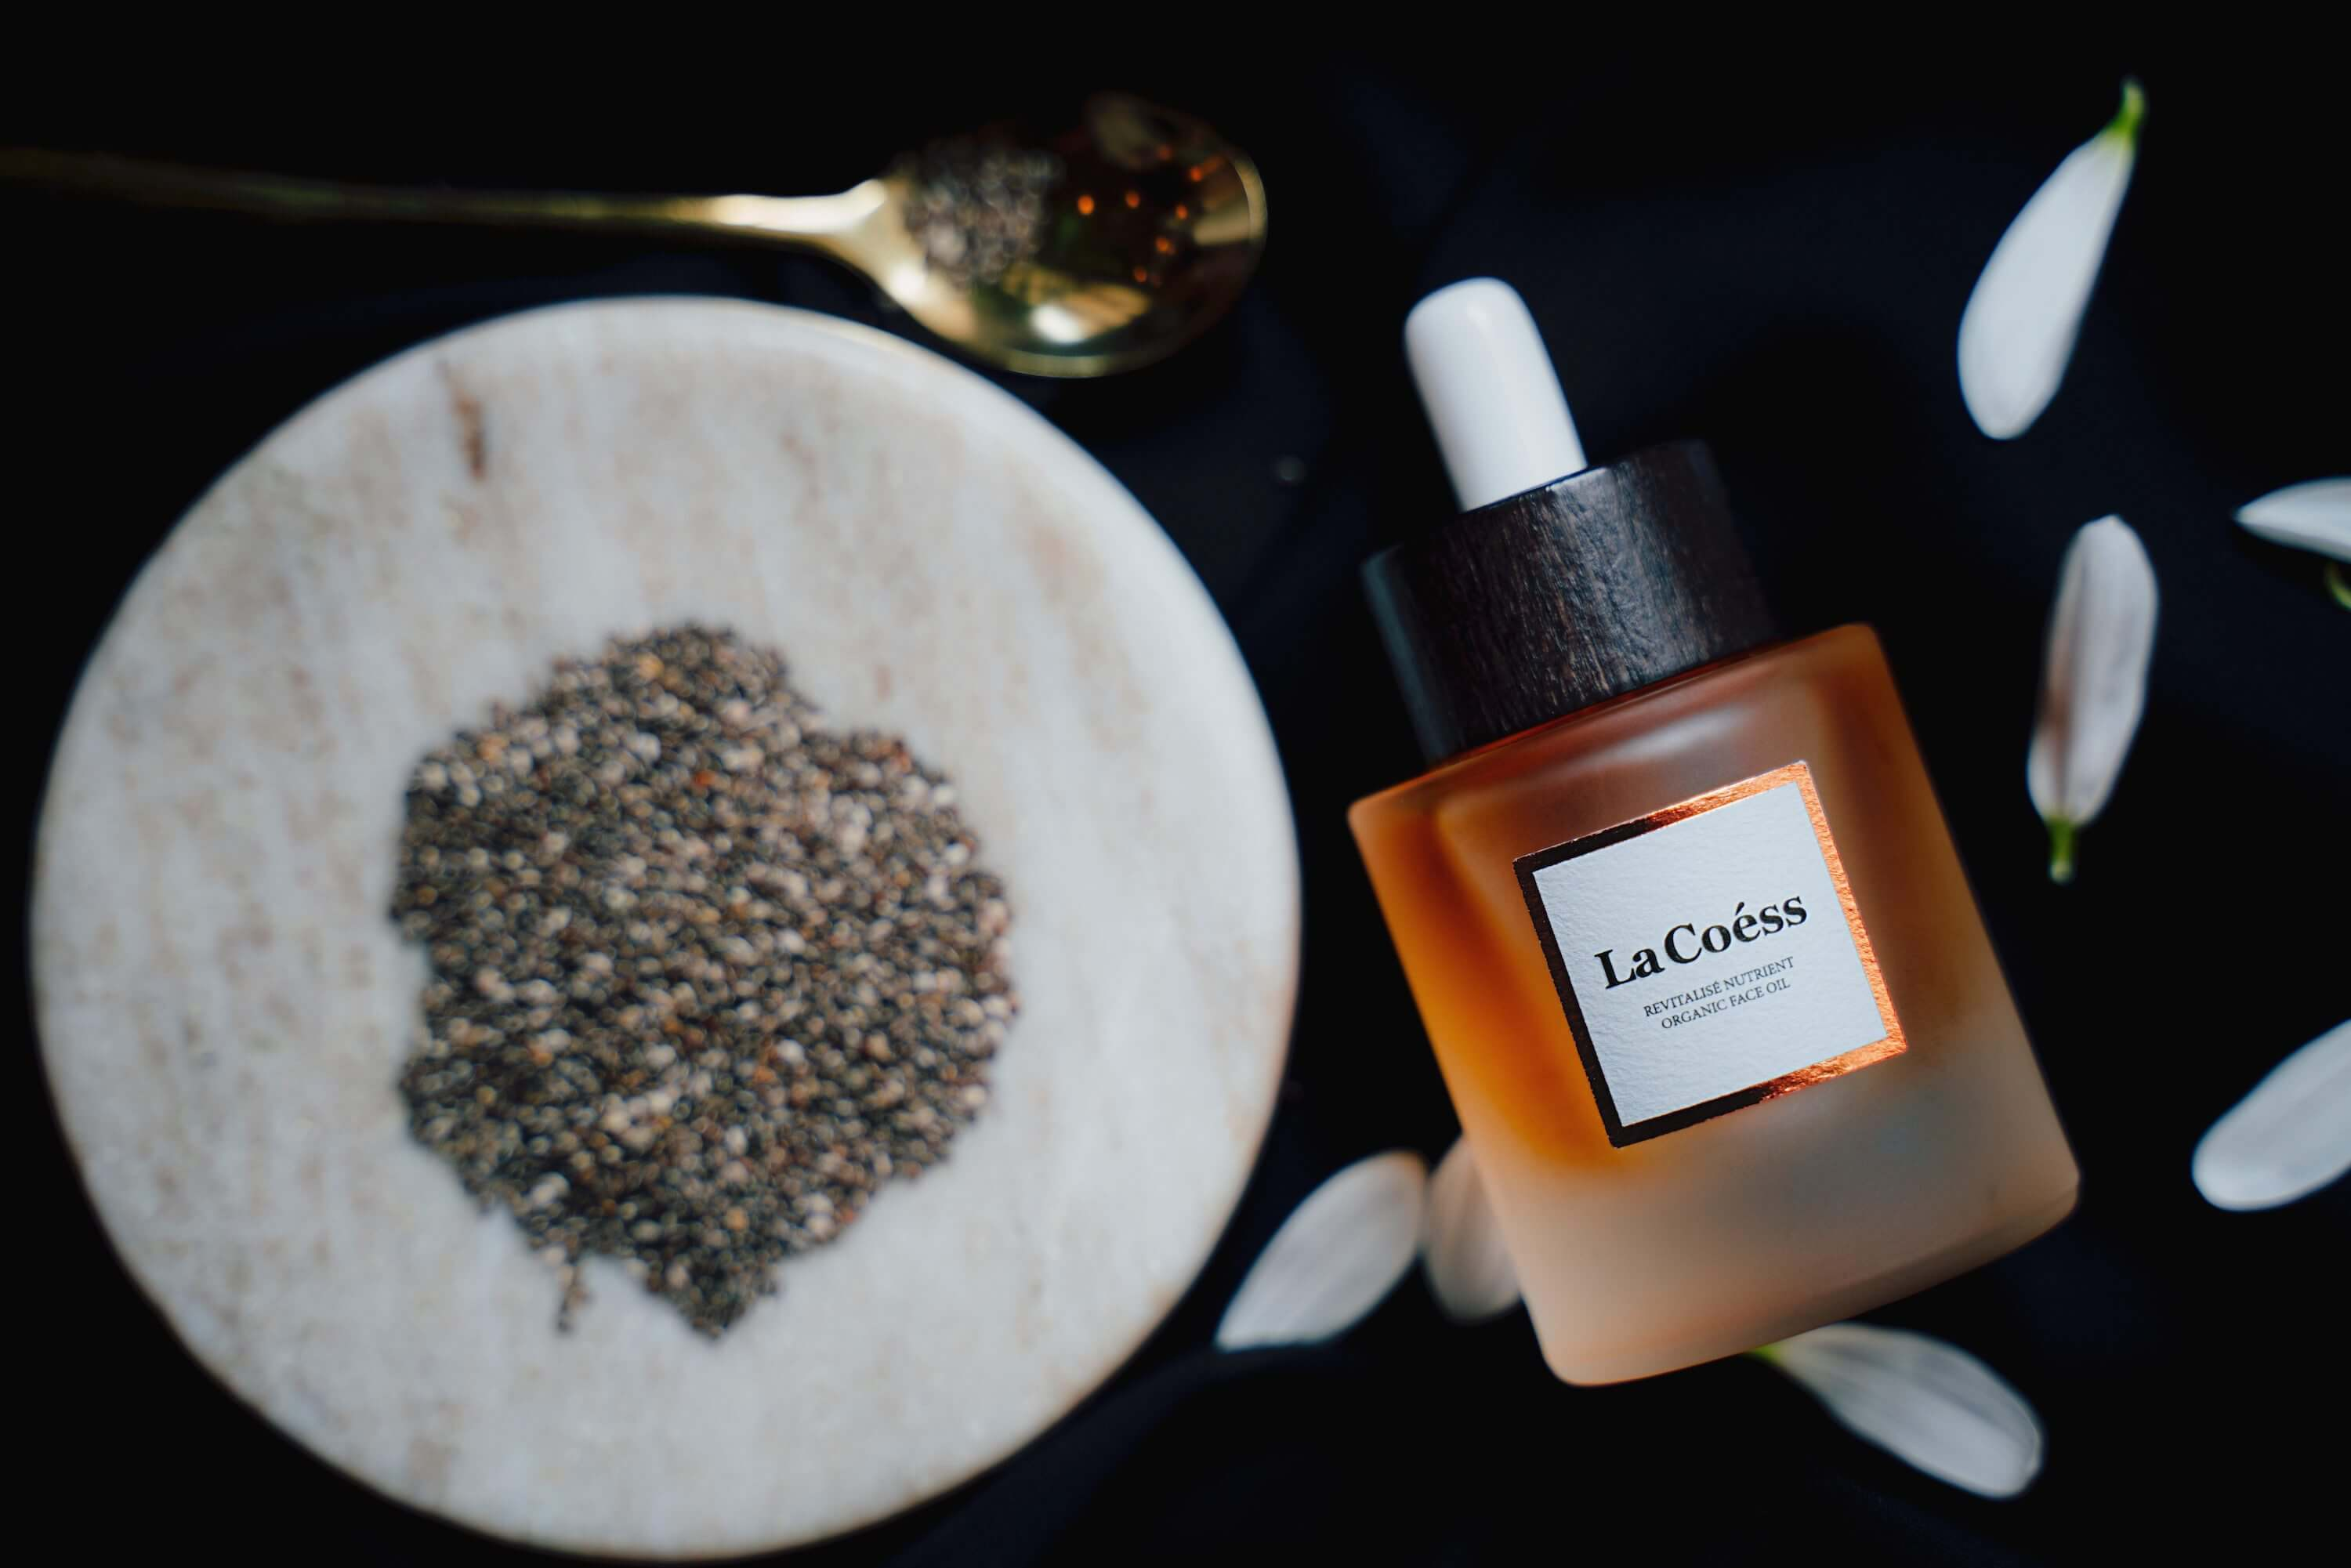 La Coess Face Oil